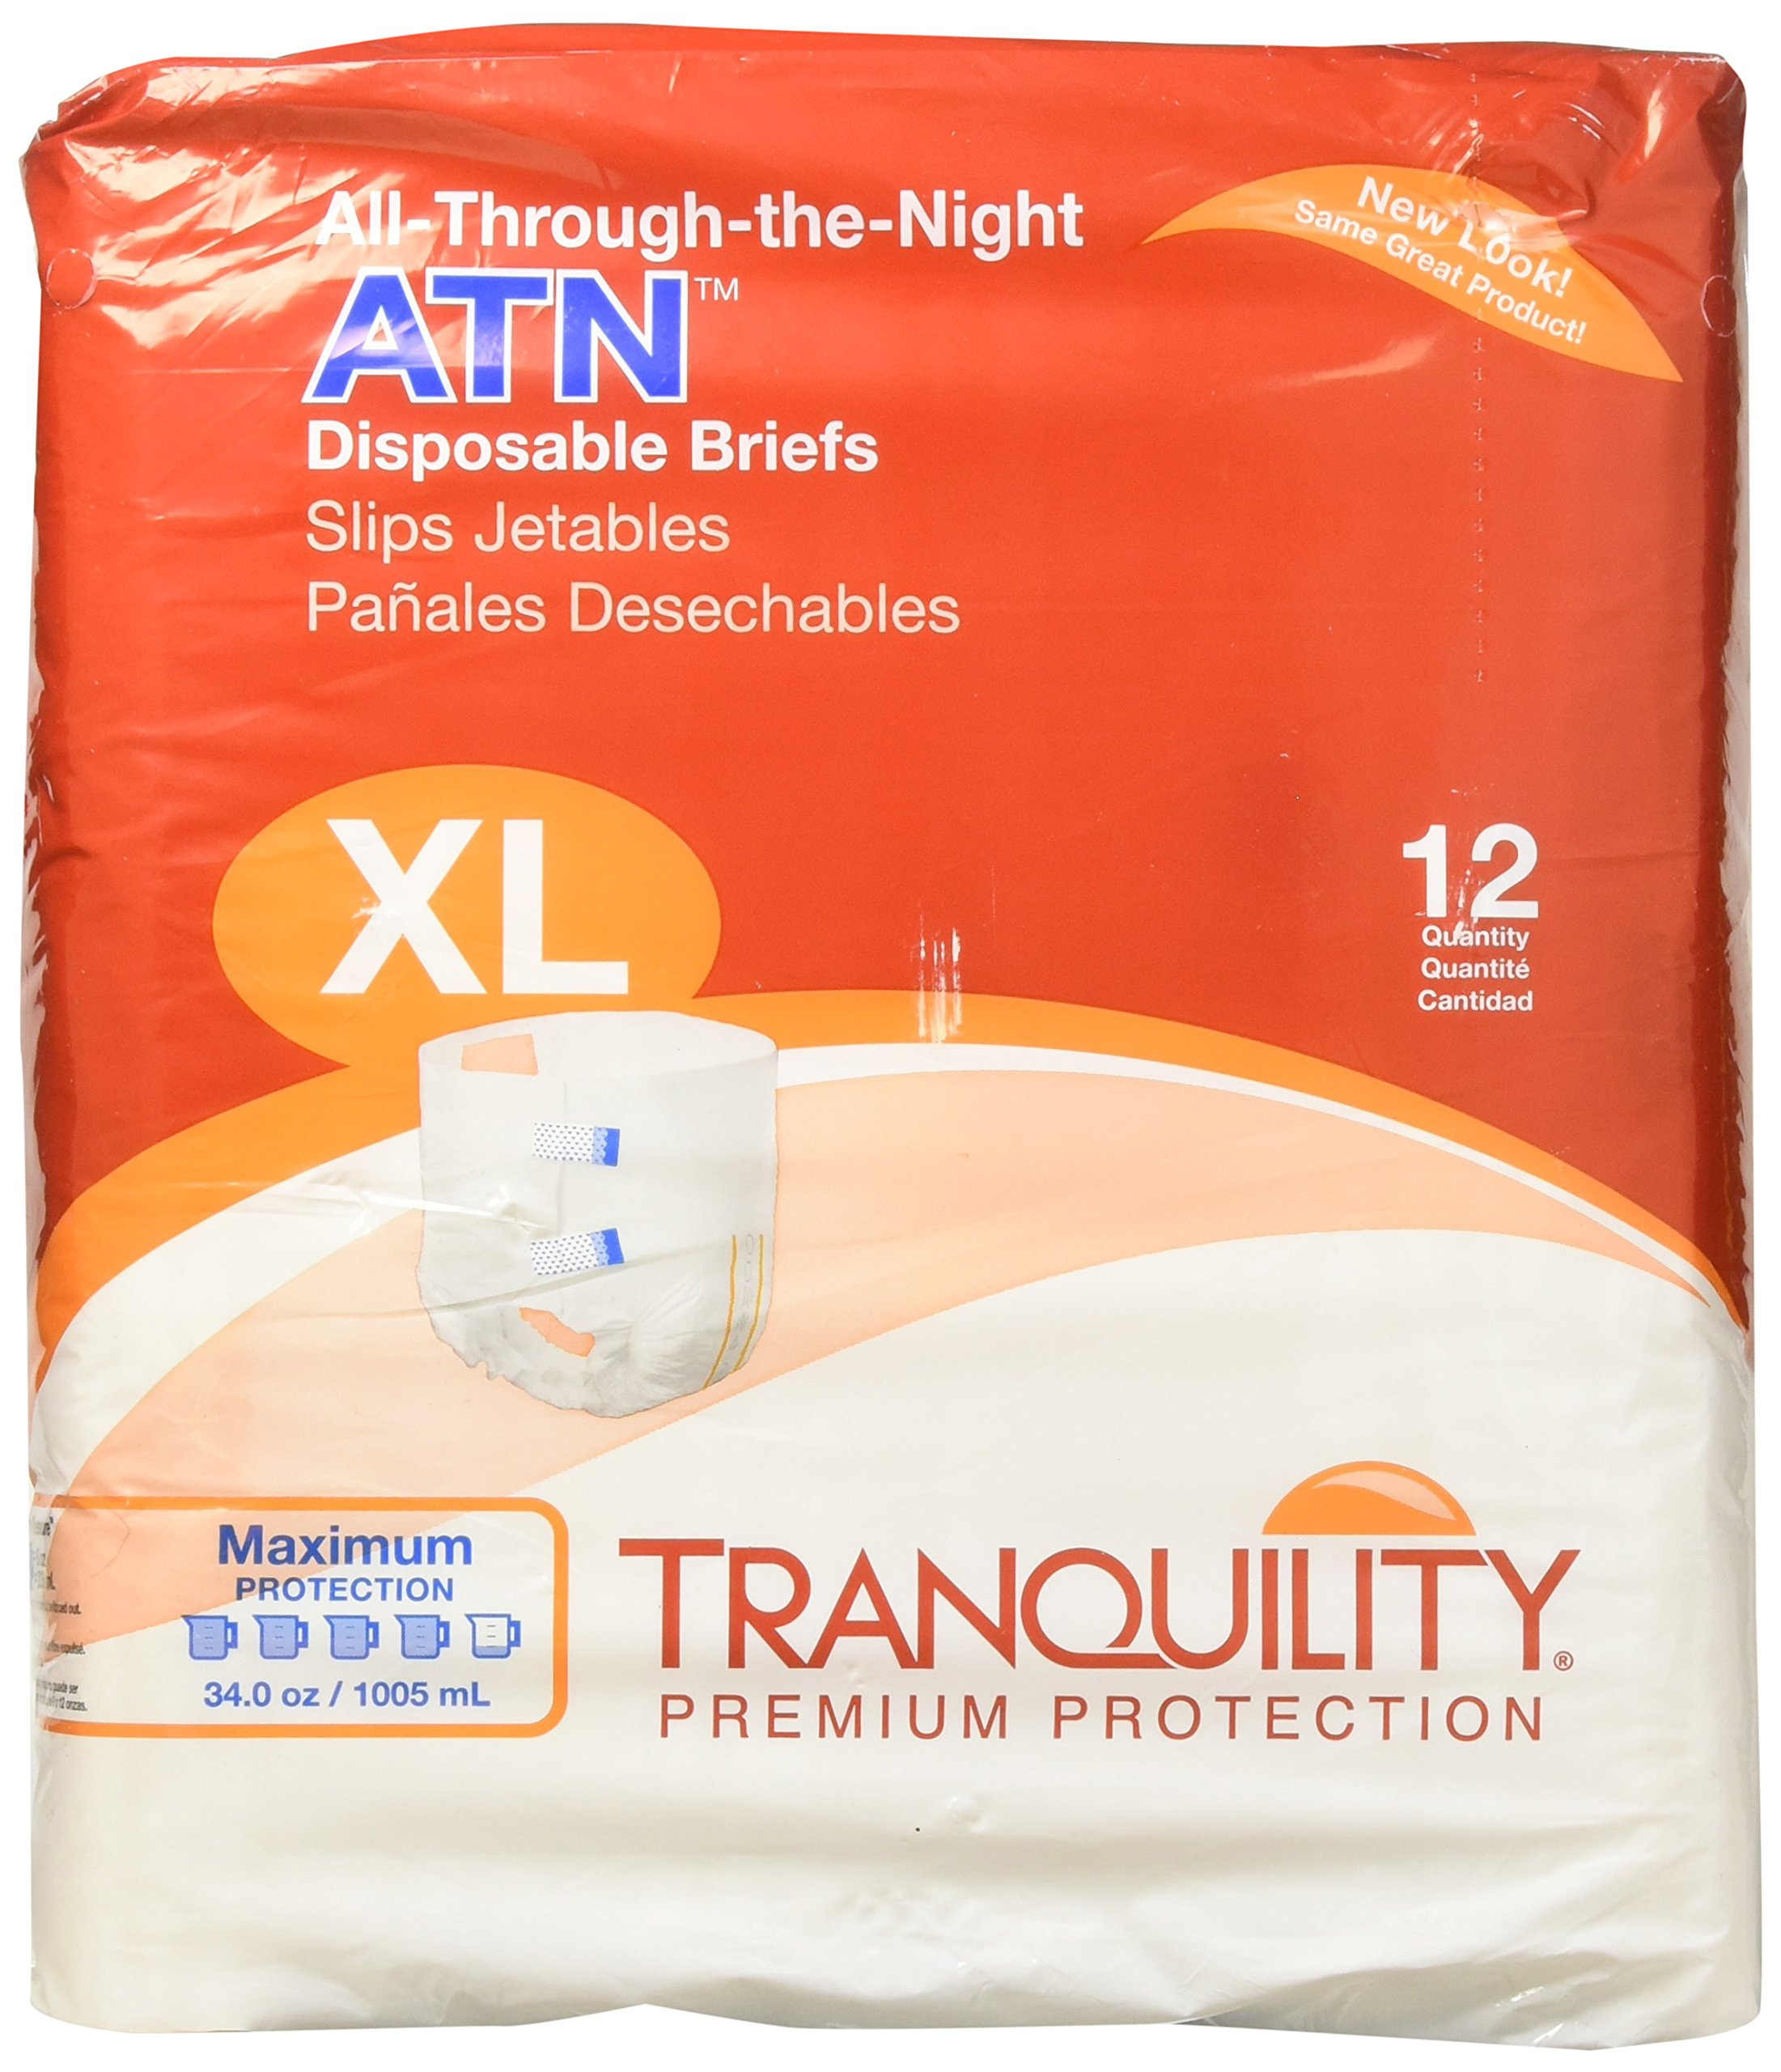 Tranquility ATN (All-Through-the-Night) Adult Disposable Briefs - XL